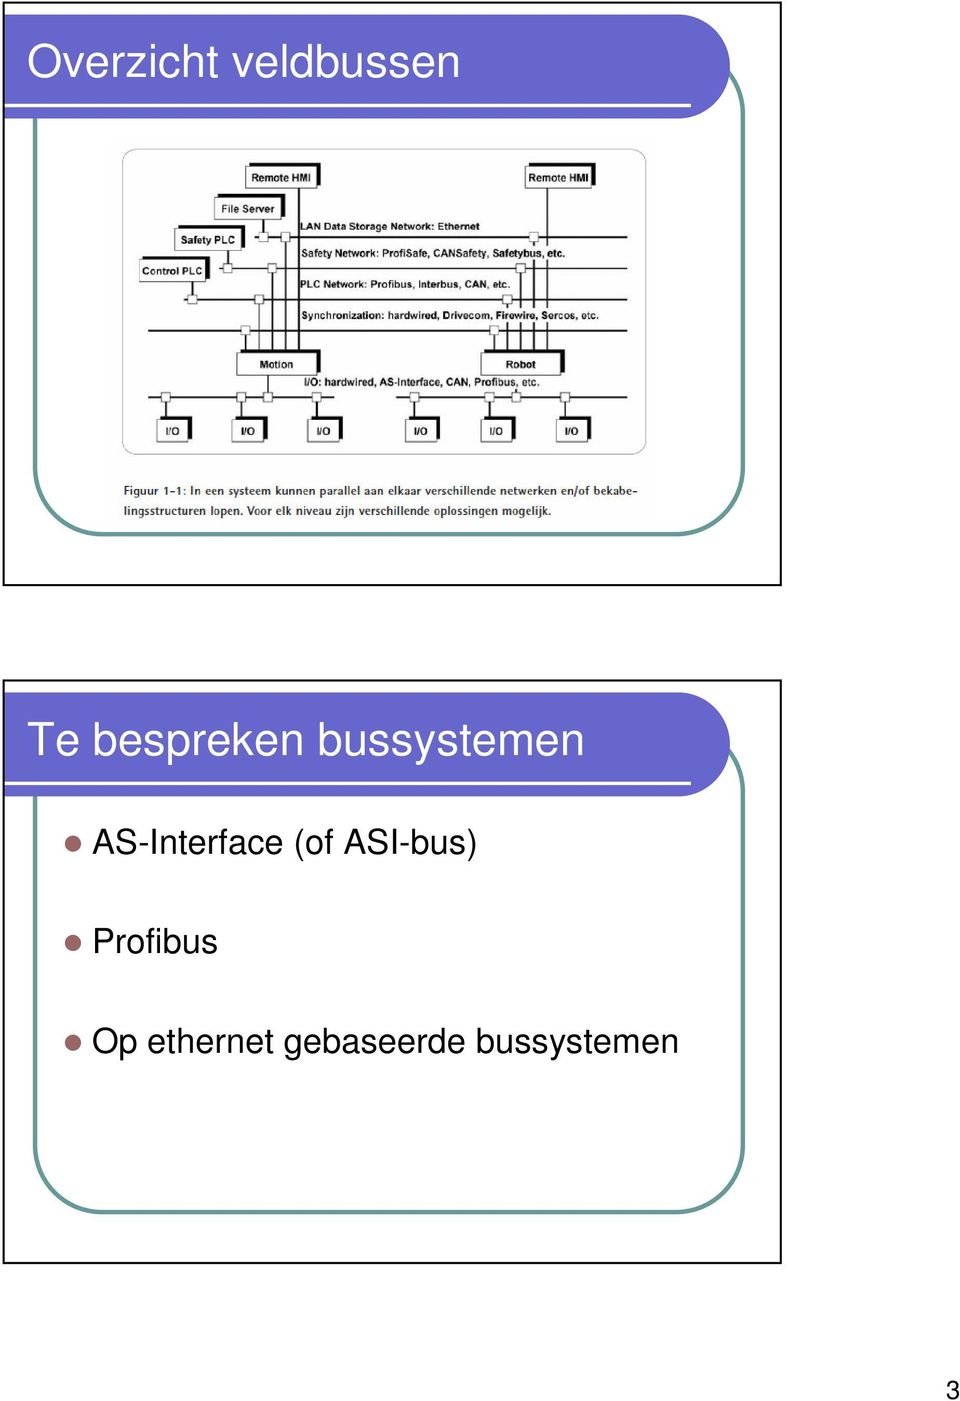 AS-Interface (of ASI-bus)